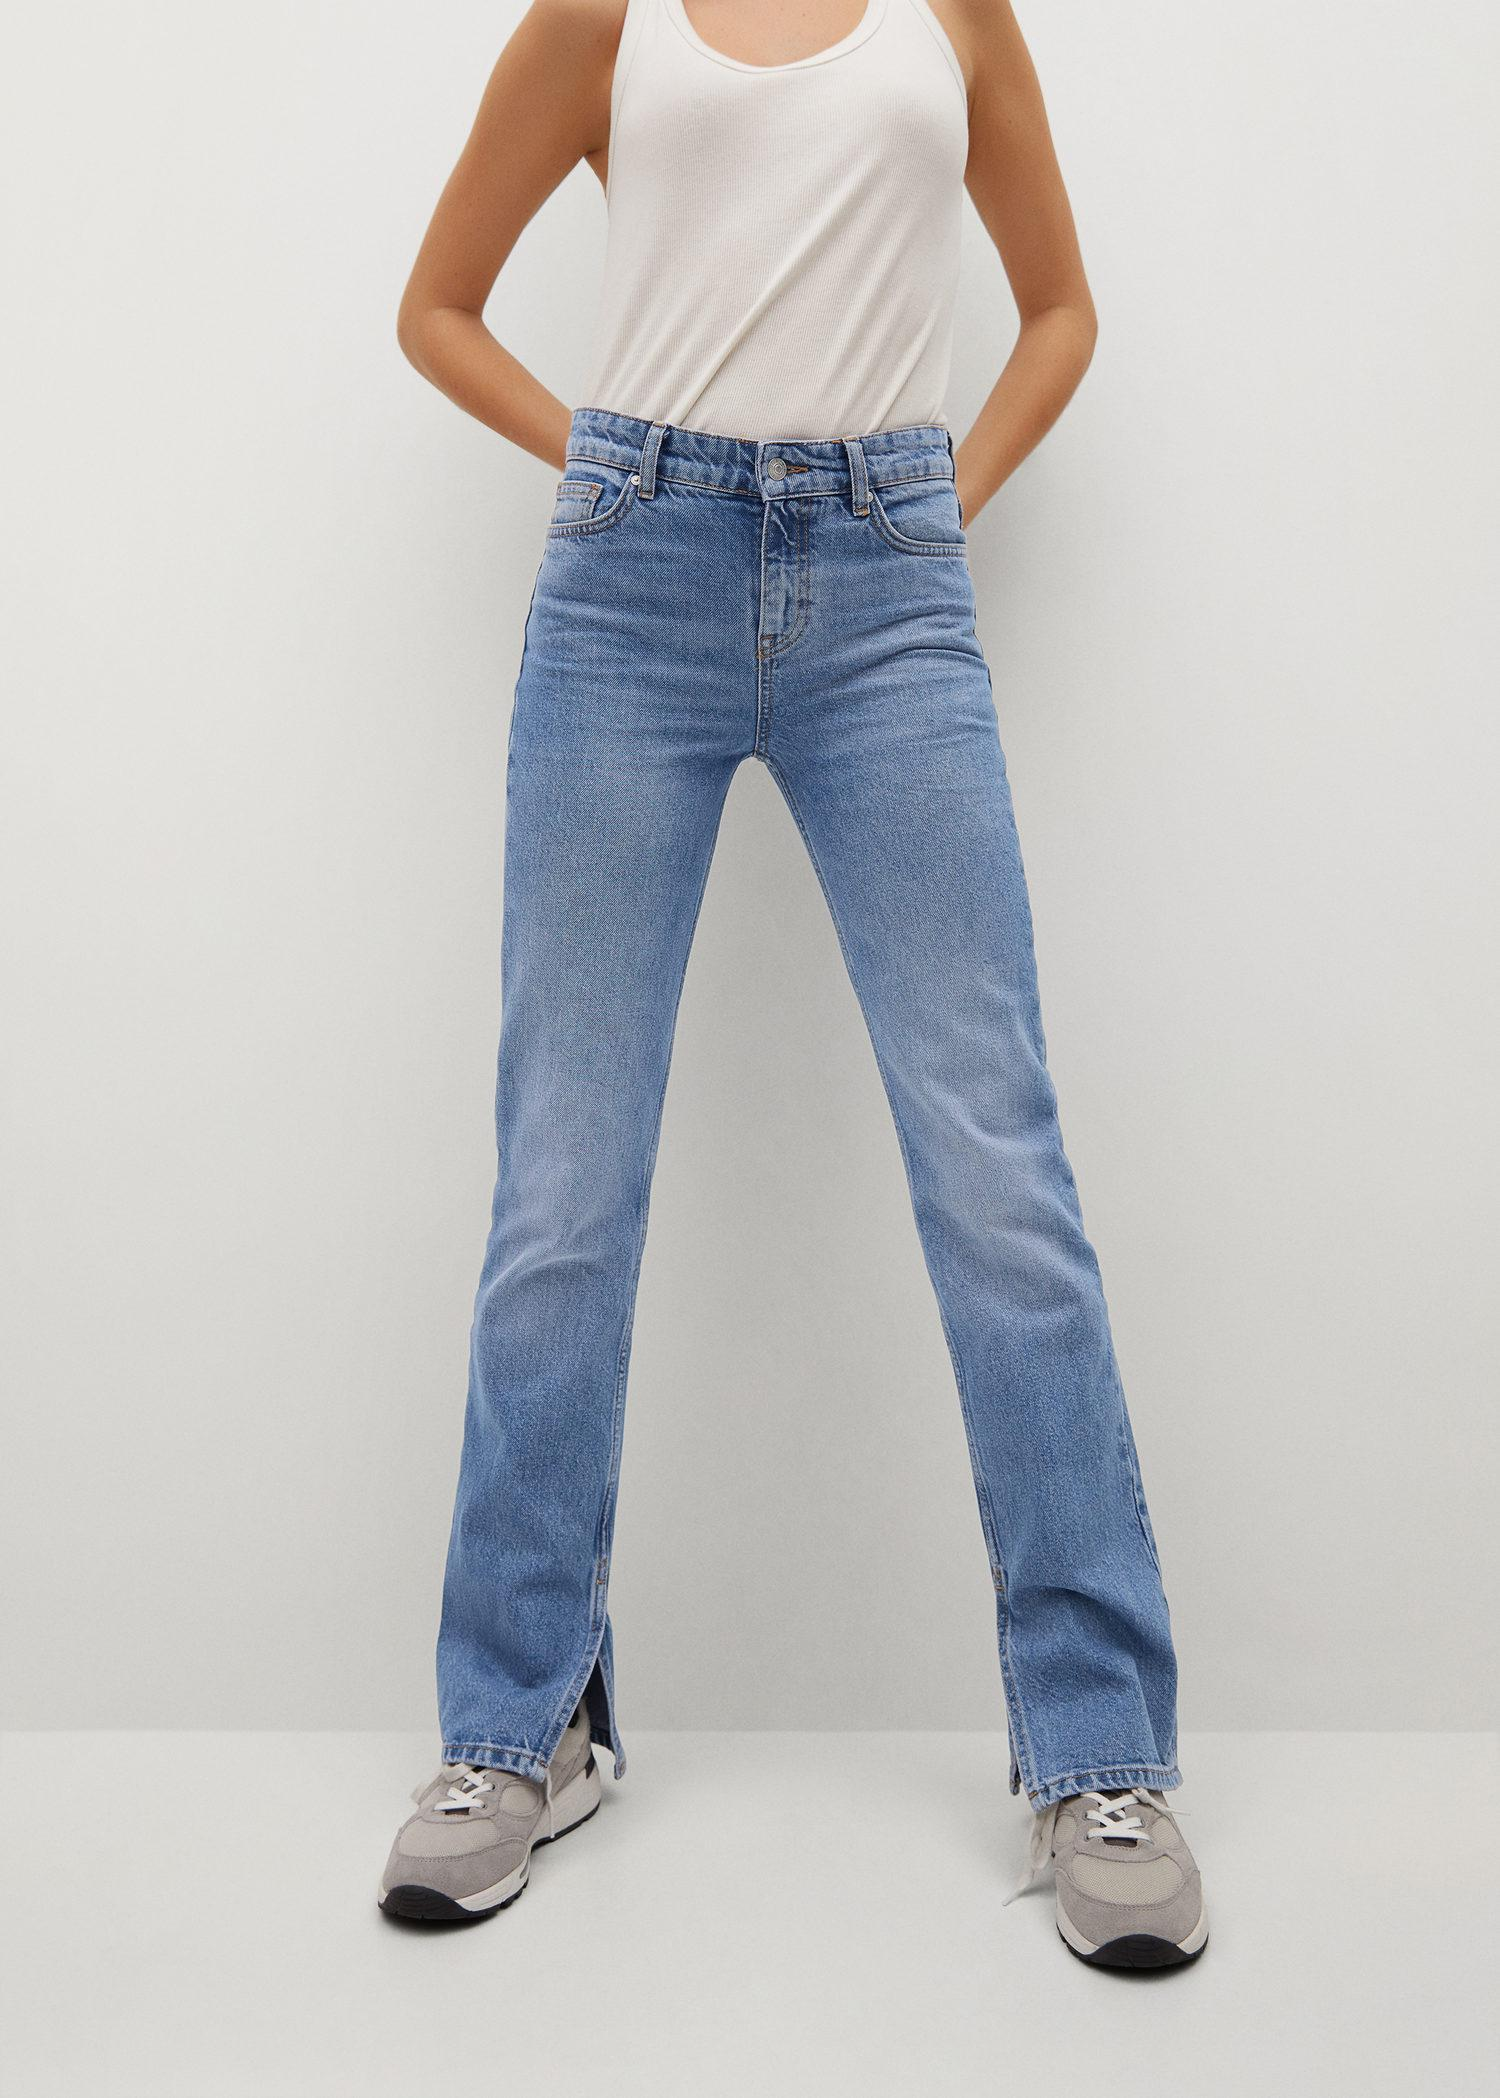 Straight opening jeans